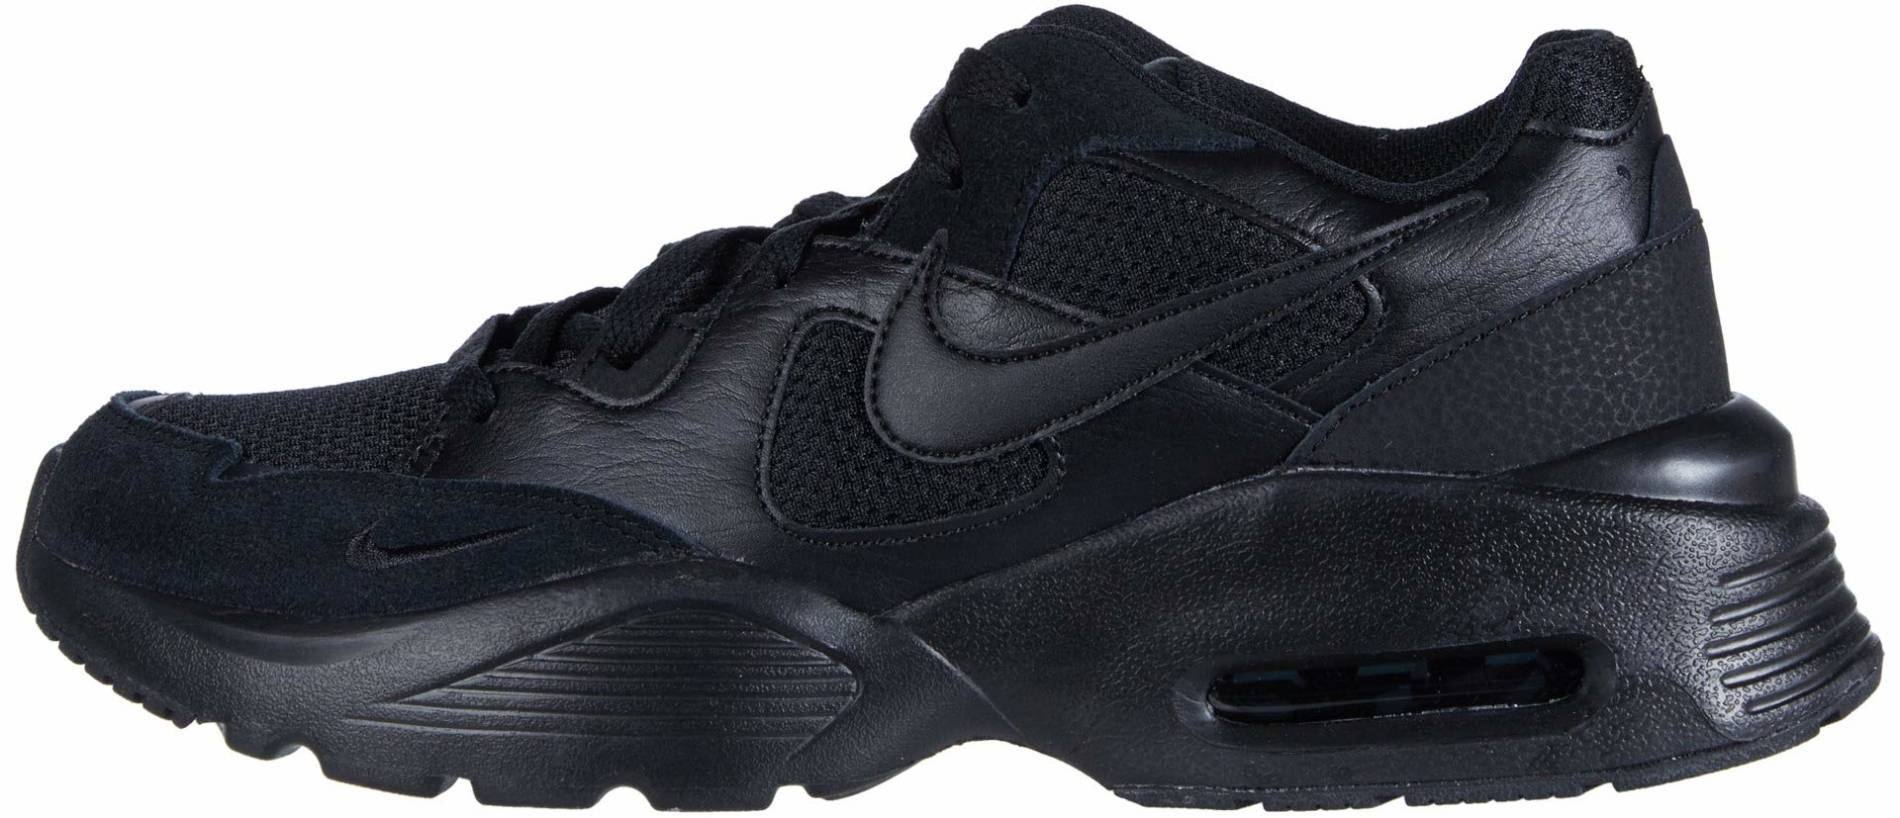 Nike Air Max Fusion sneakers in 5 colors (only $44) | RunRepeat